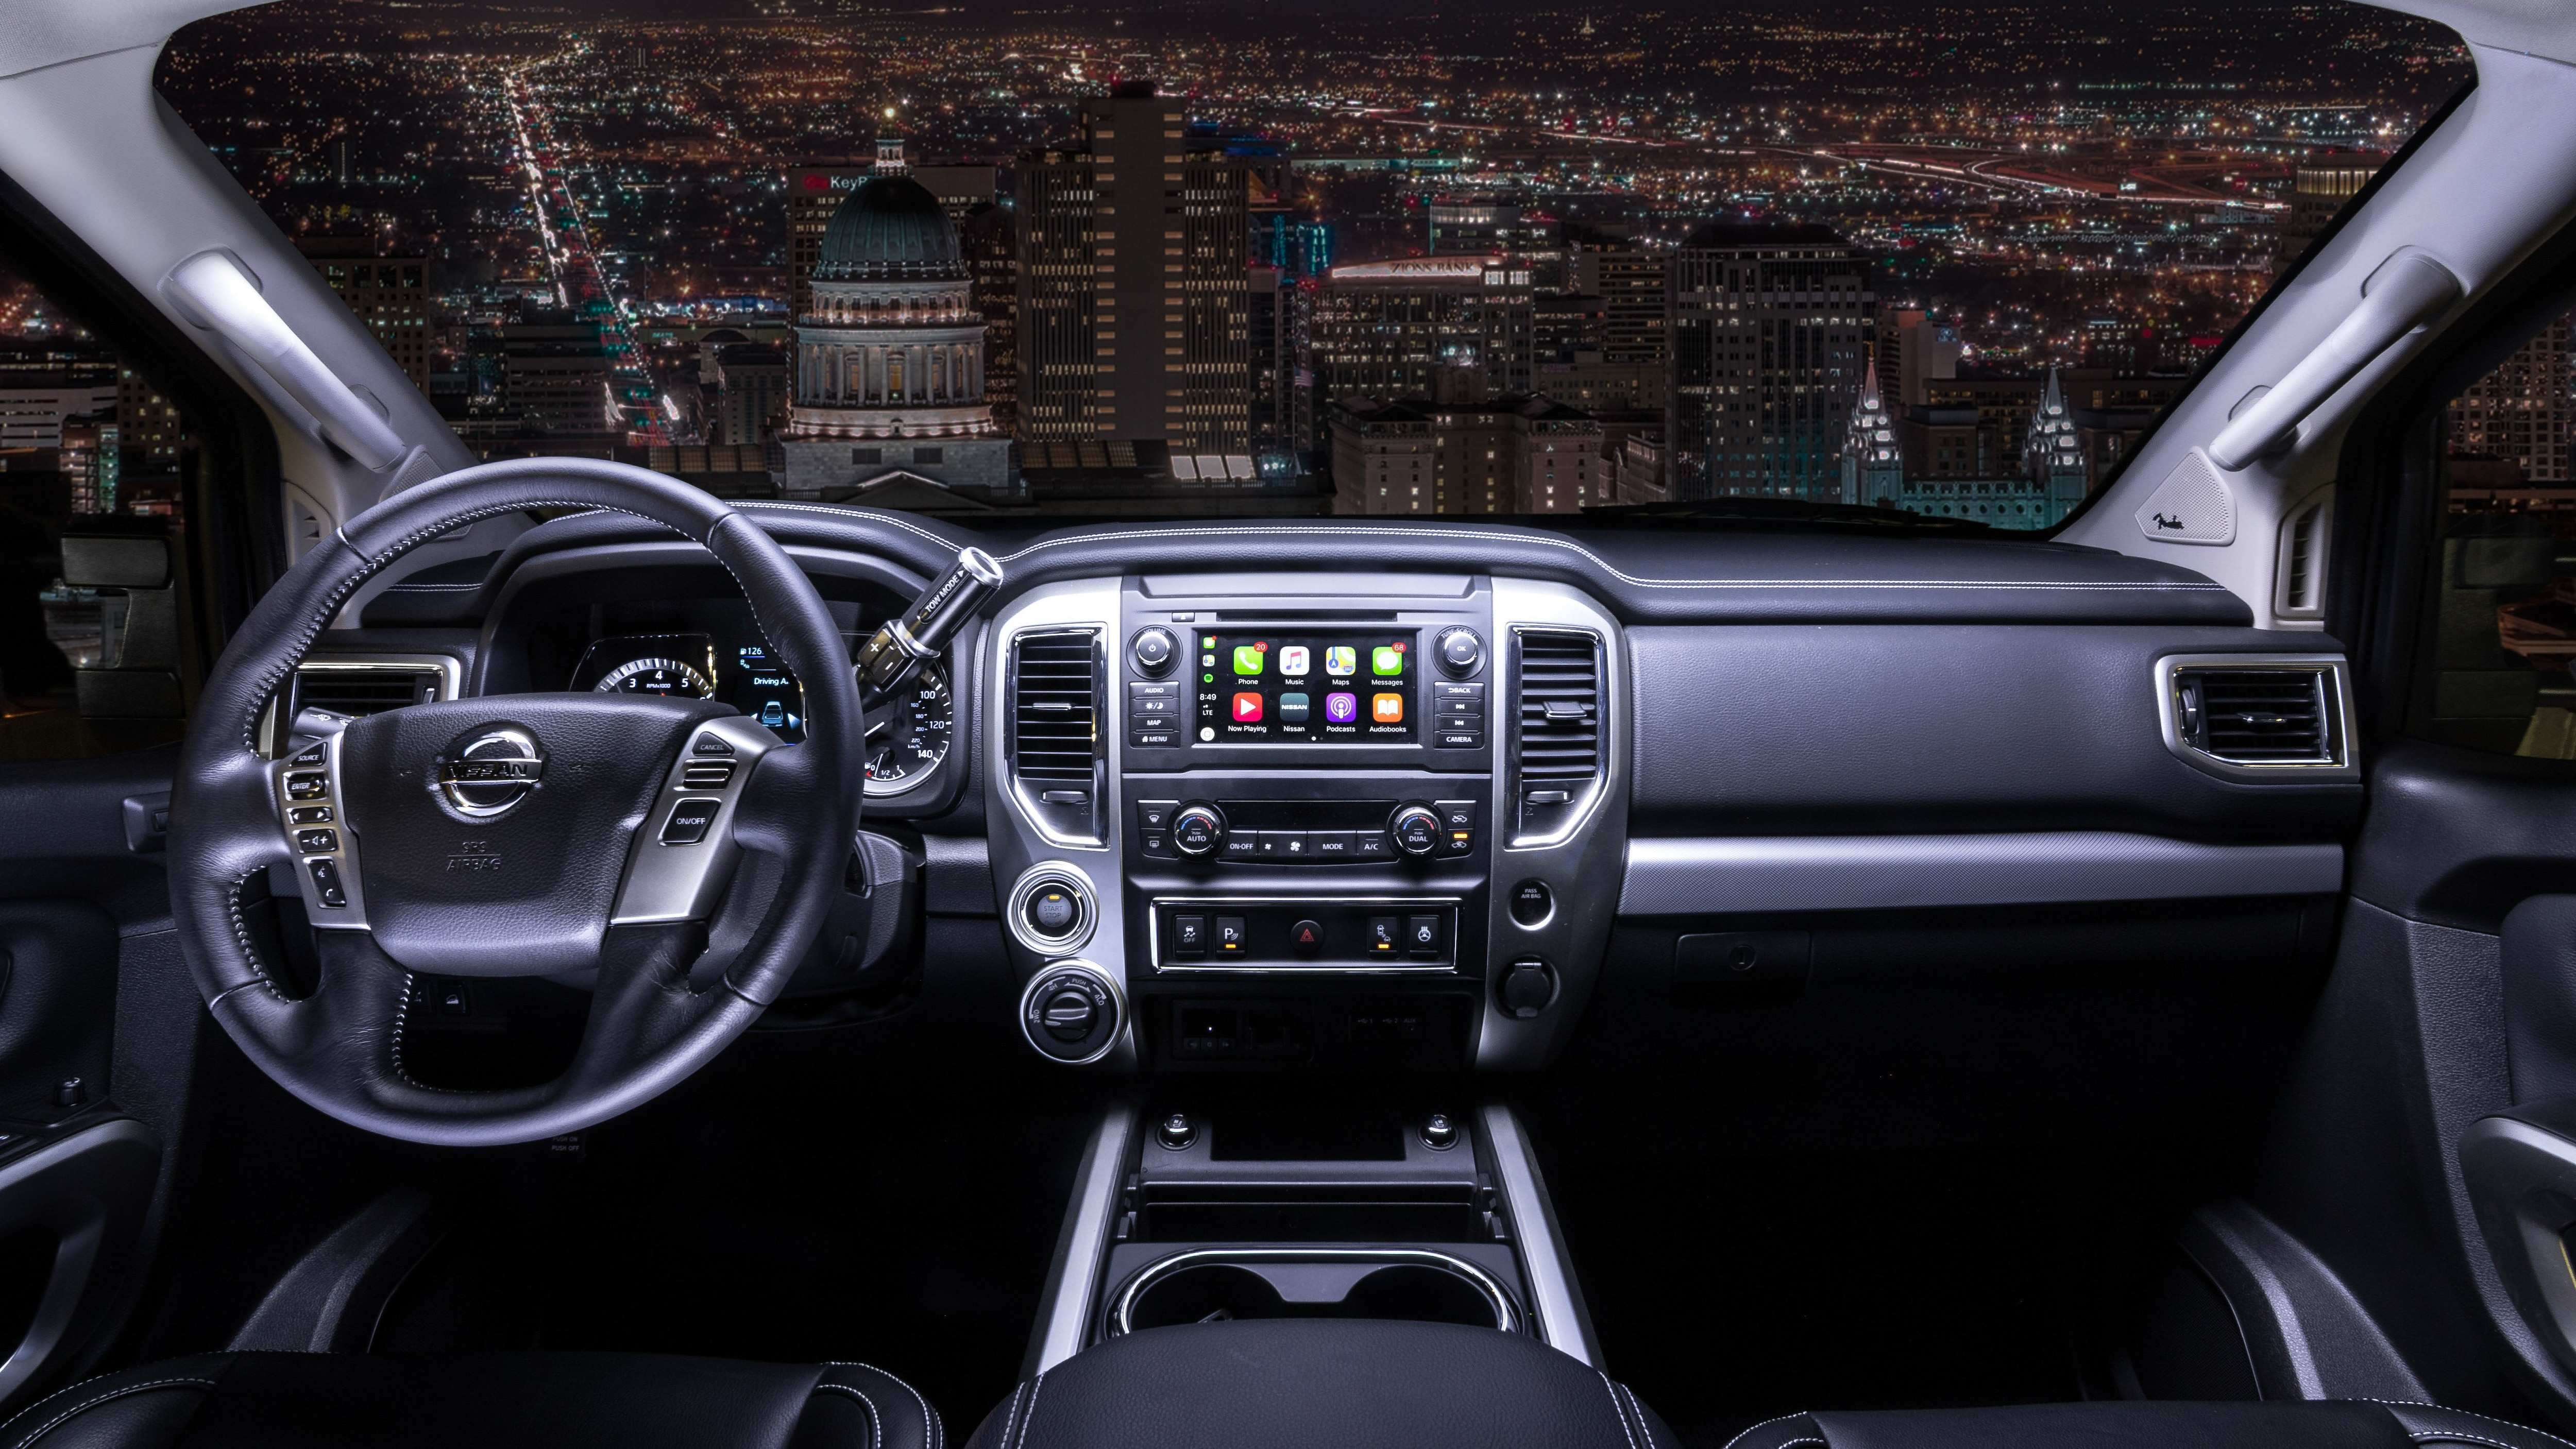 61 All New Nissan 2019 Interior Review And Release Date